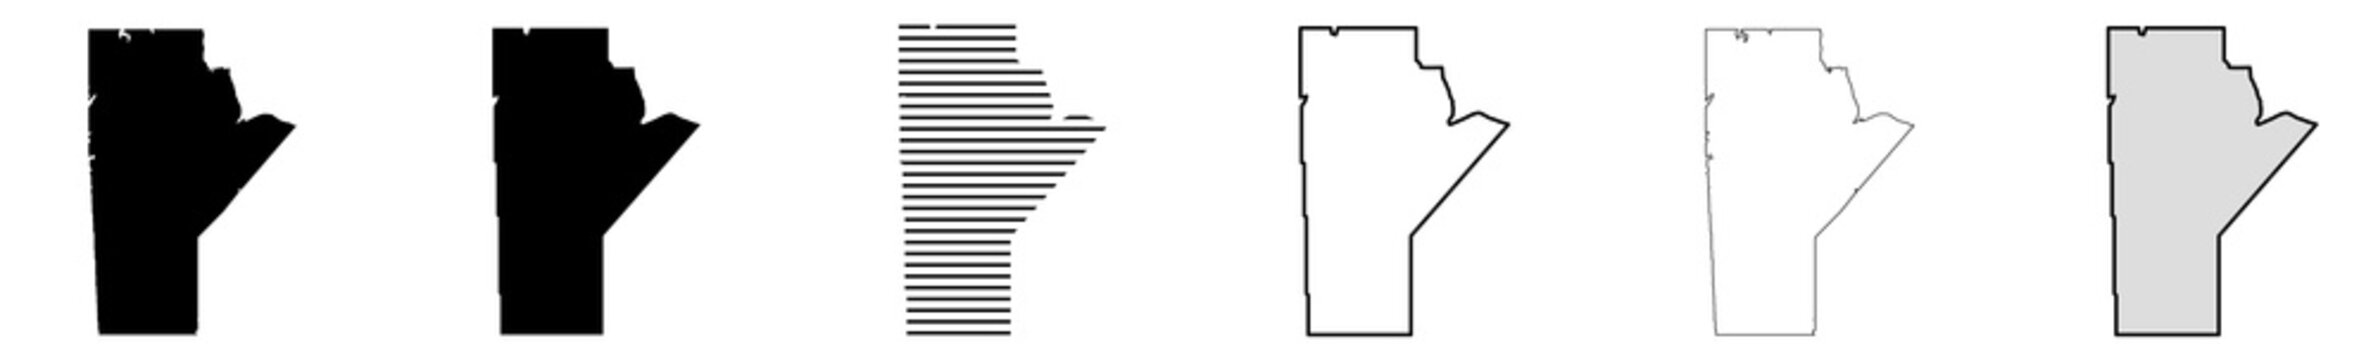 Manitoba Map Black | Province Border | Canada State | Canadian | America | Transparent Isolated | Variations